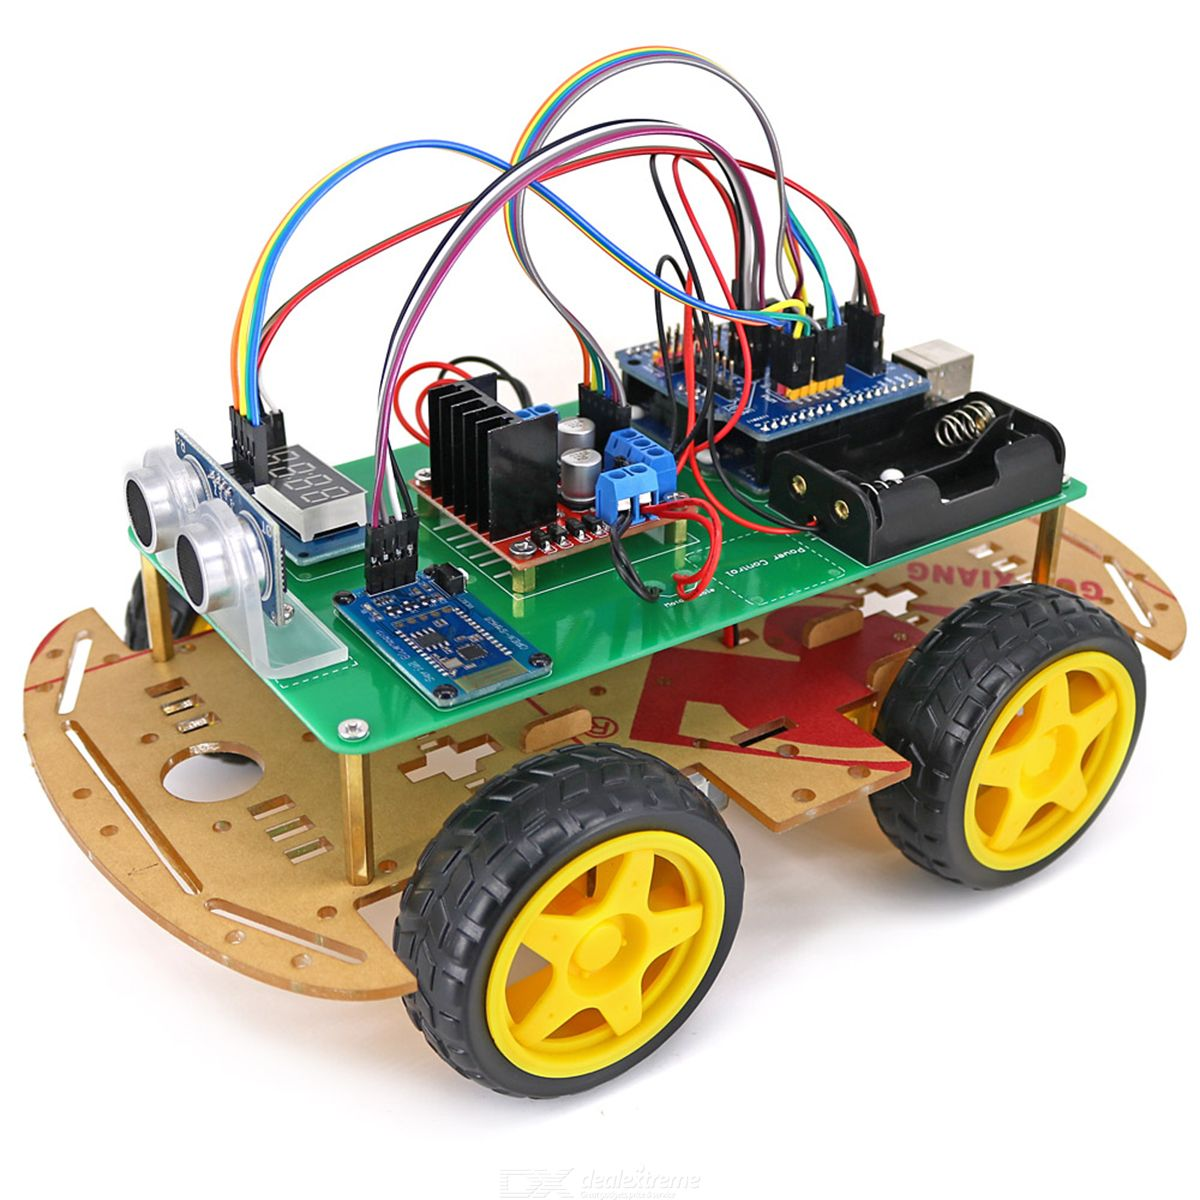 4WD Bluetooth Controlled Smart Robot Car Kit for Arduino